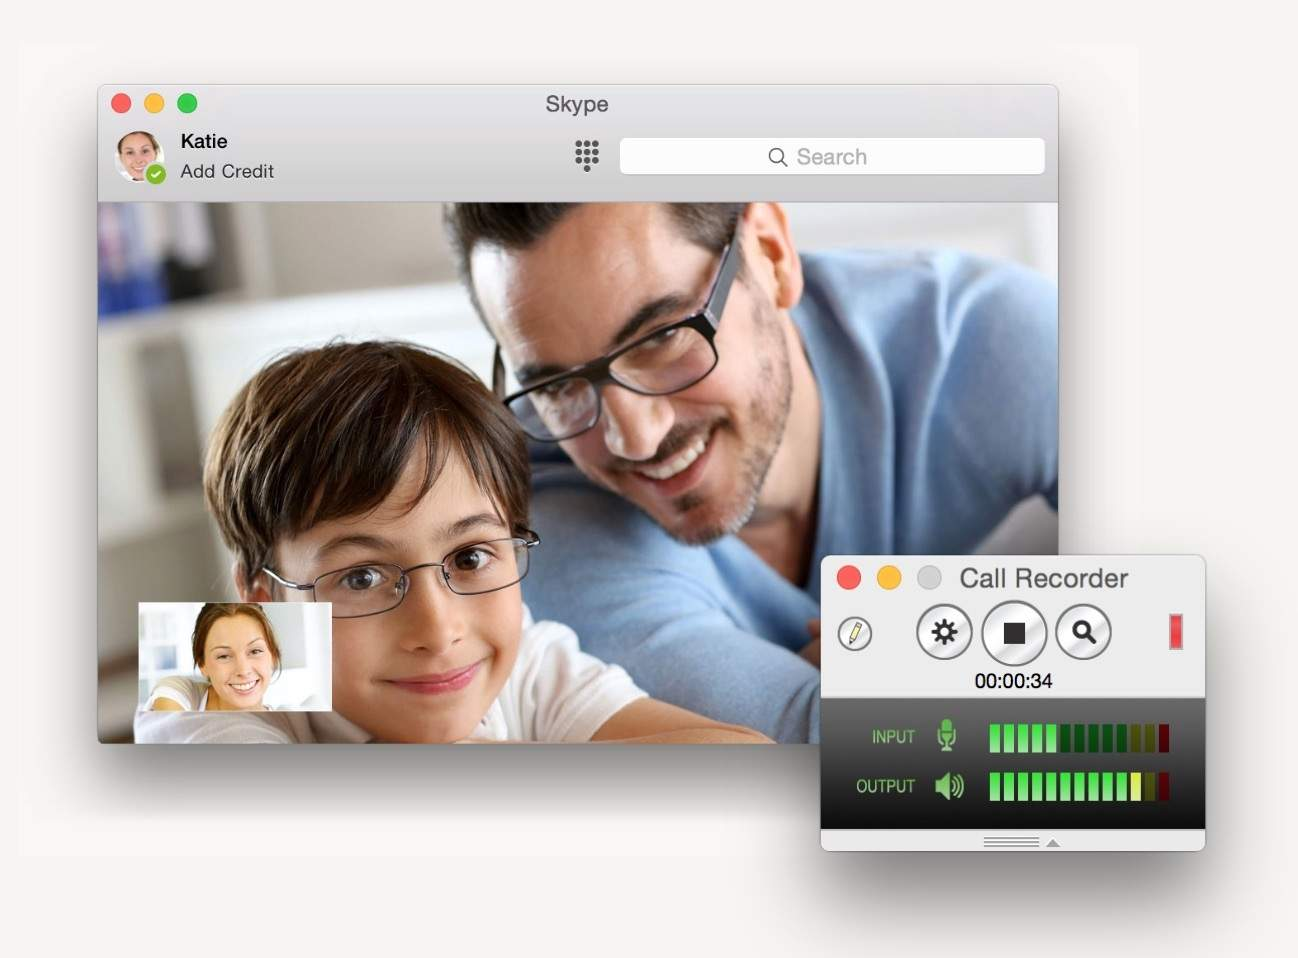 How To Record Skype Calls On iPad & iPhone